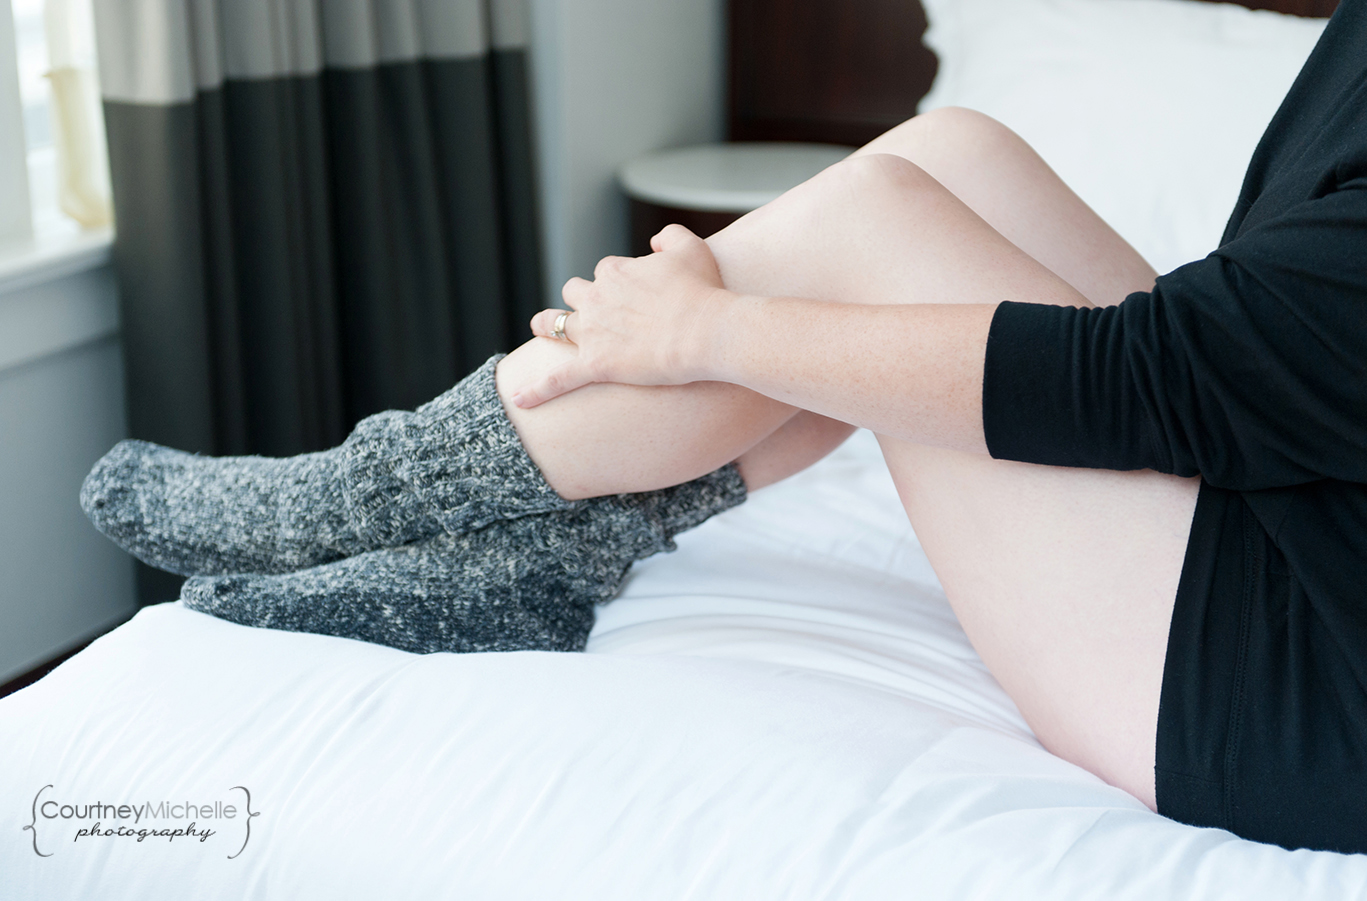 woman-legs-and-legwarmers-on-bed-chicago-boudoir-photography-by-courtney-laper.jpg